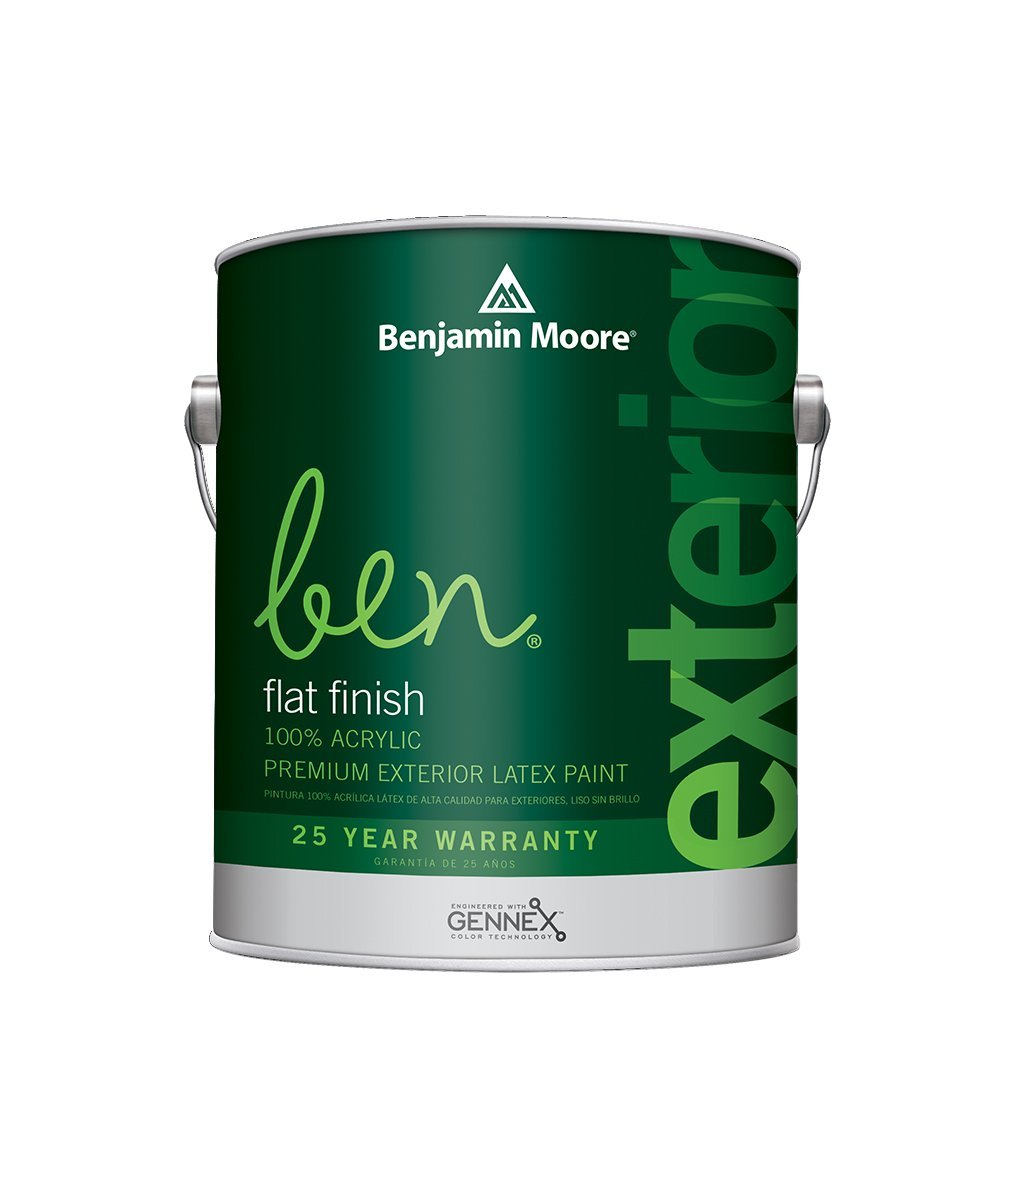 Benjamin Moore Ben Flat Exterior Paint available at Johnson Paint & Maine Paint in MA, NH & ME.